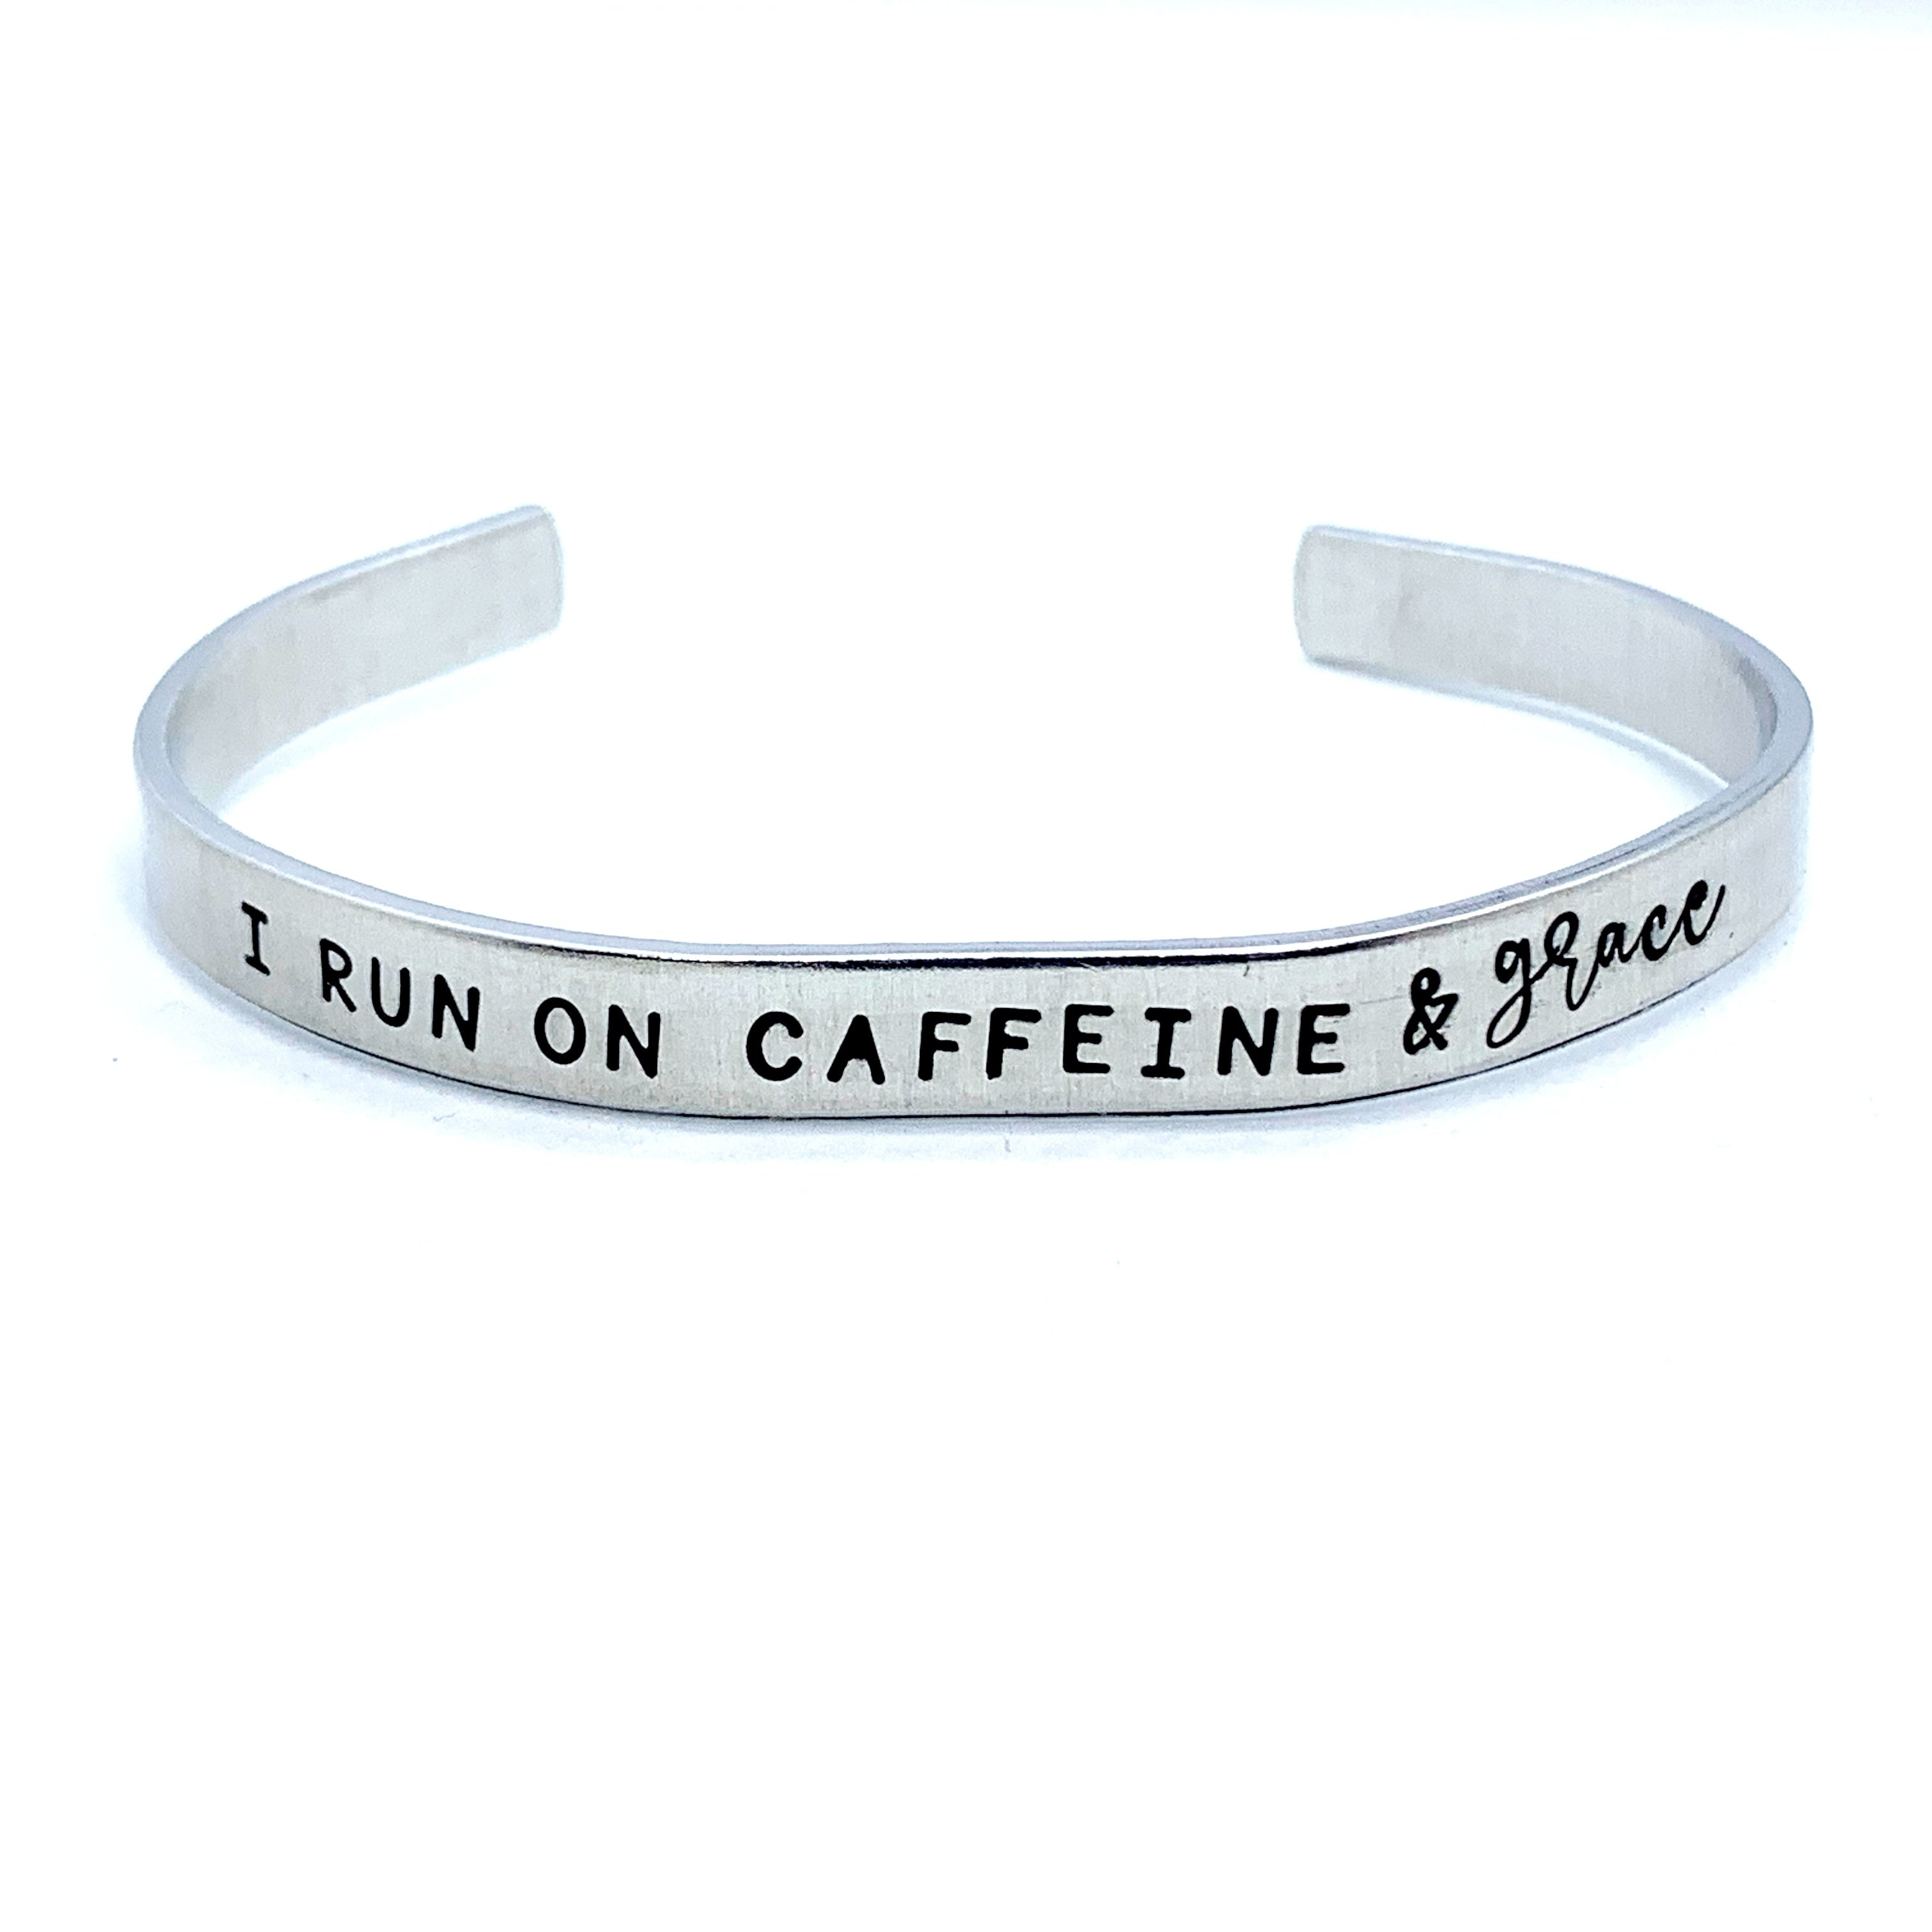 ¼ inch Aluminum Cuff - I Run On Caffeine & Grace